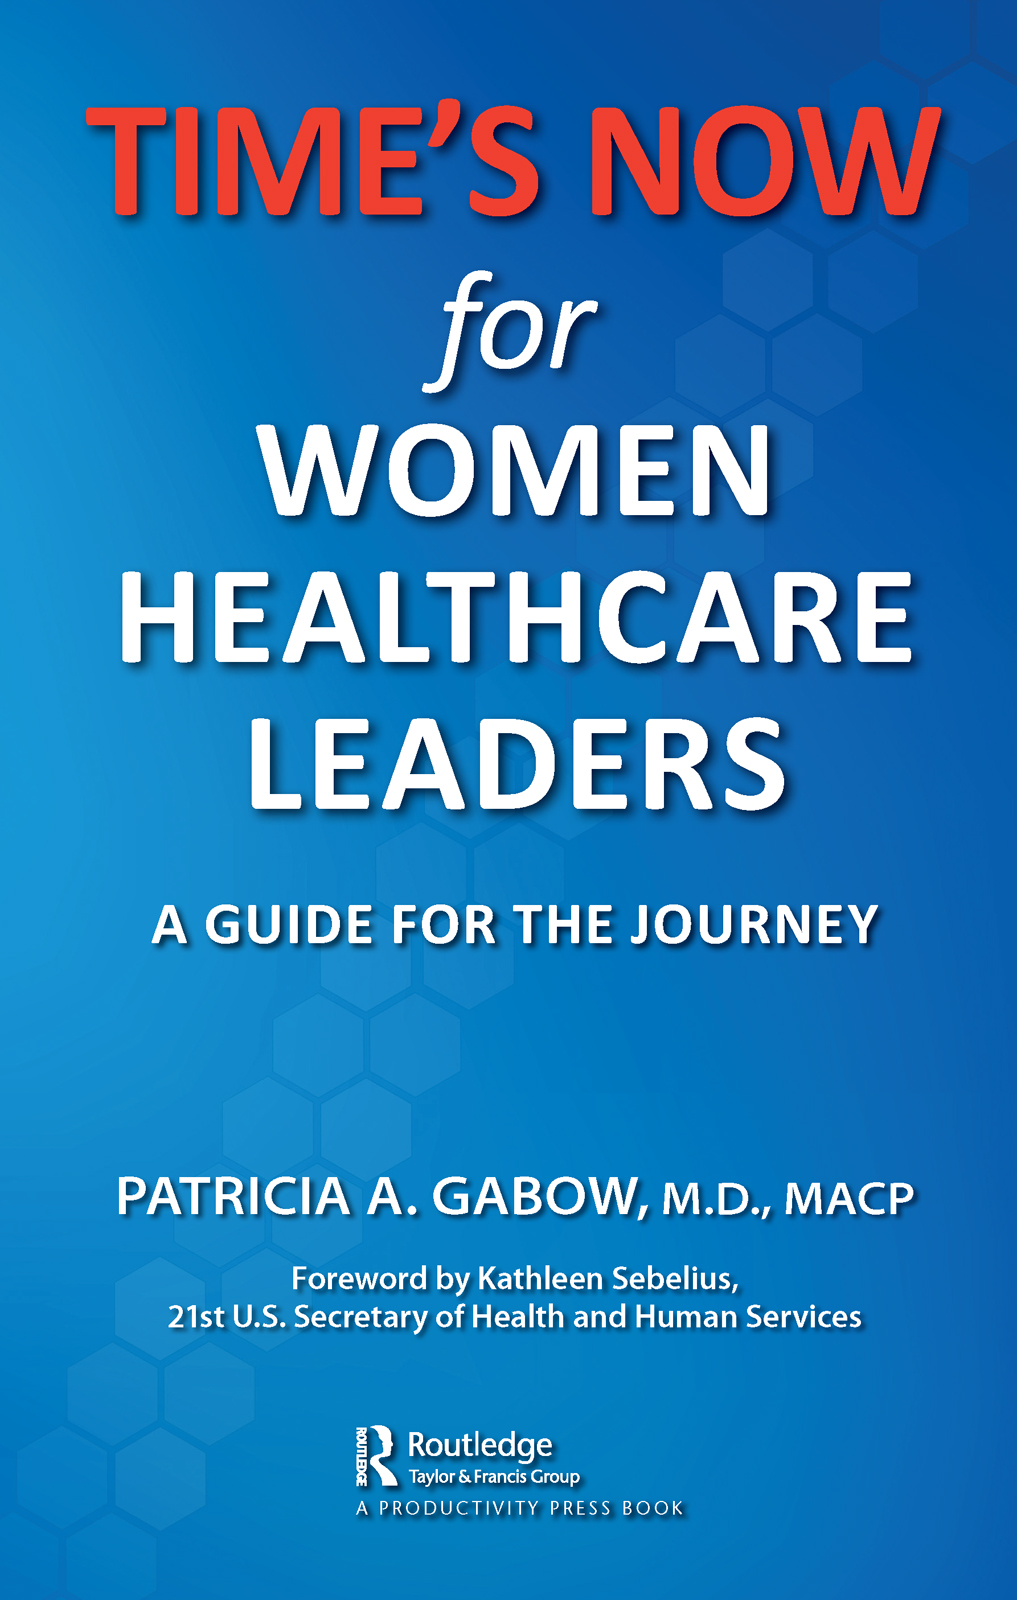 TIME'S NOW for WOMEN HEALTHCARE LEADERS